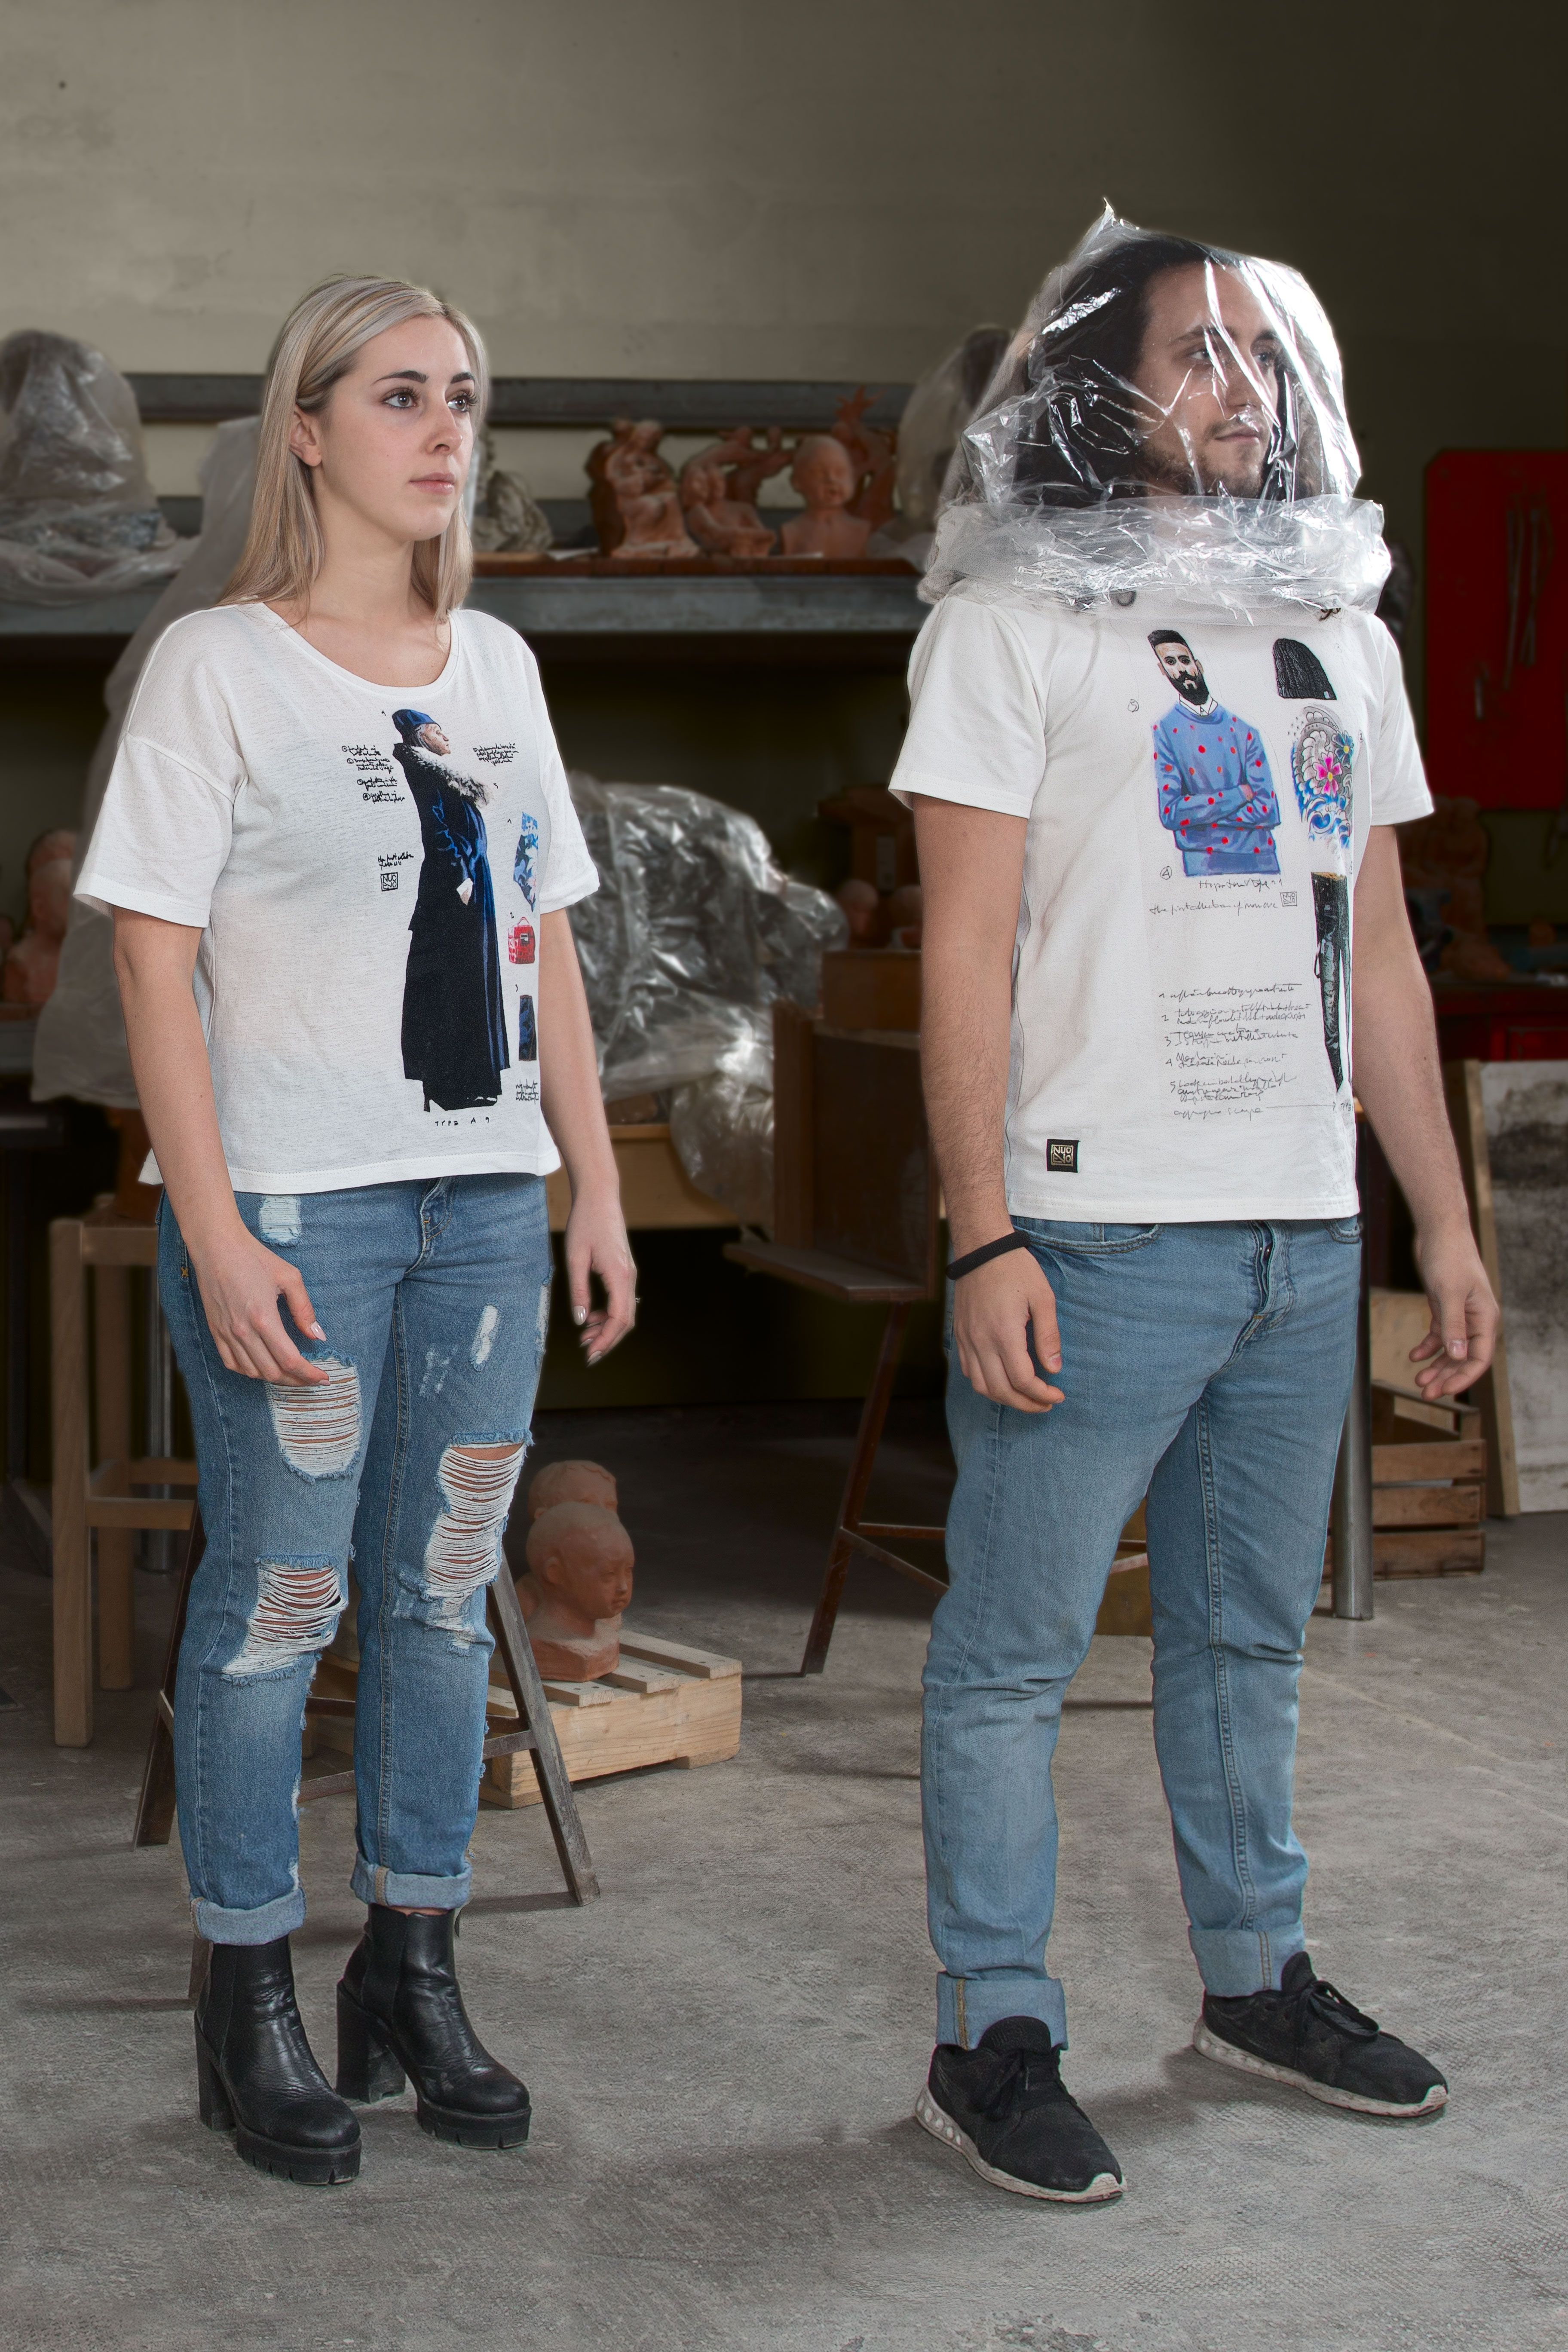 T Shirt #nuovoevo #nuovoevotypes #types #conceptstore #conceptpeople #moda #fashionart #italianproducts